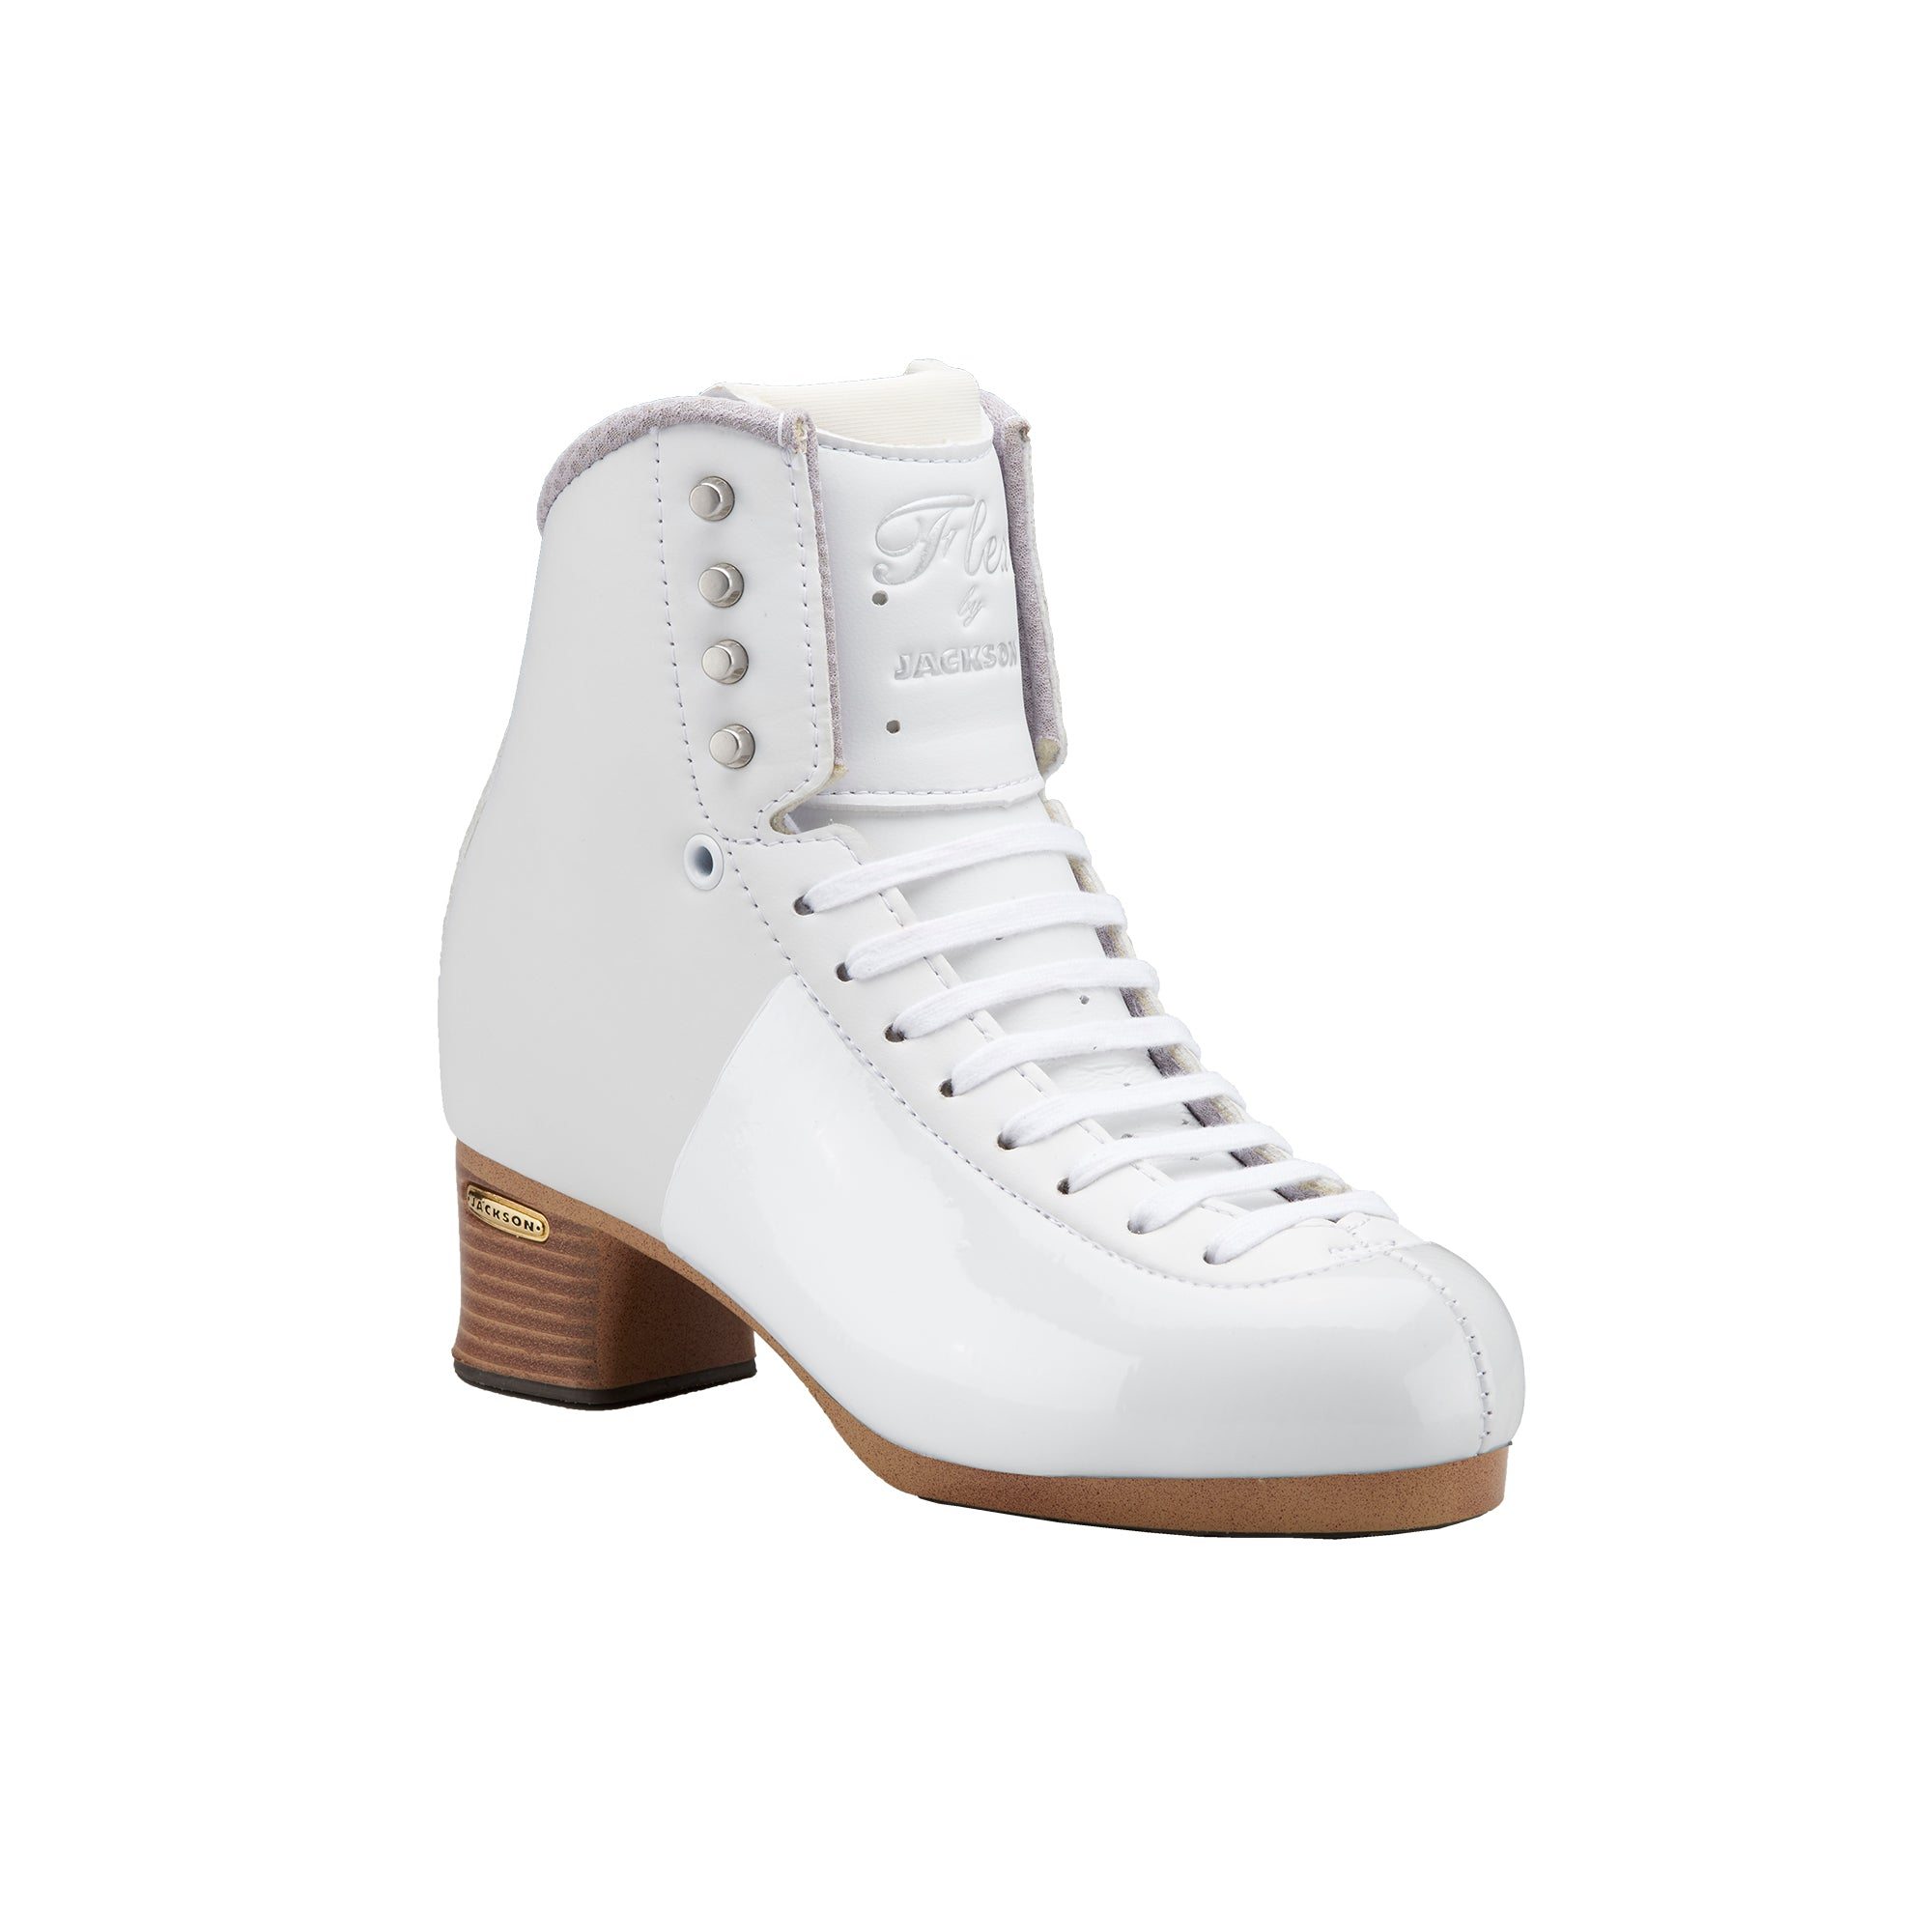 Jackson Flex 2020 White Figure Skate Boot